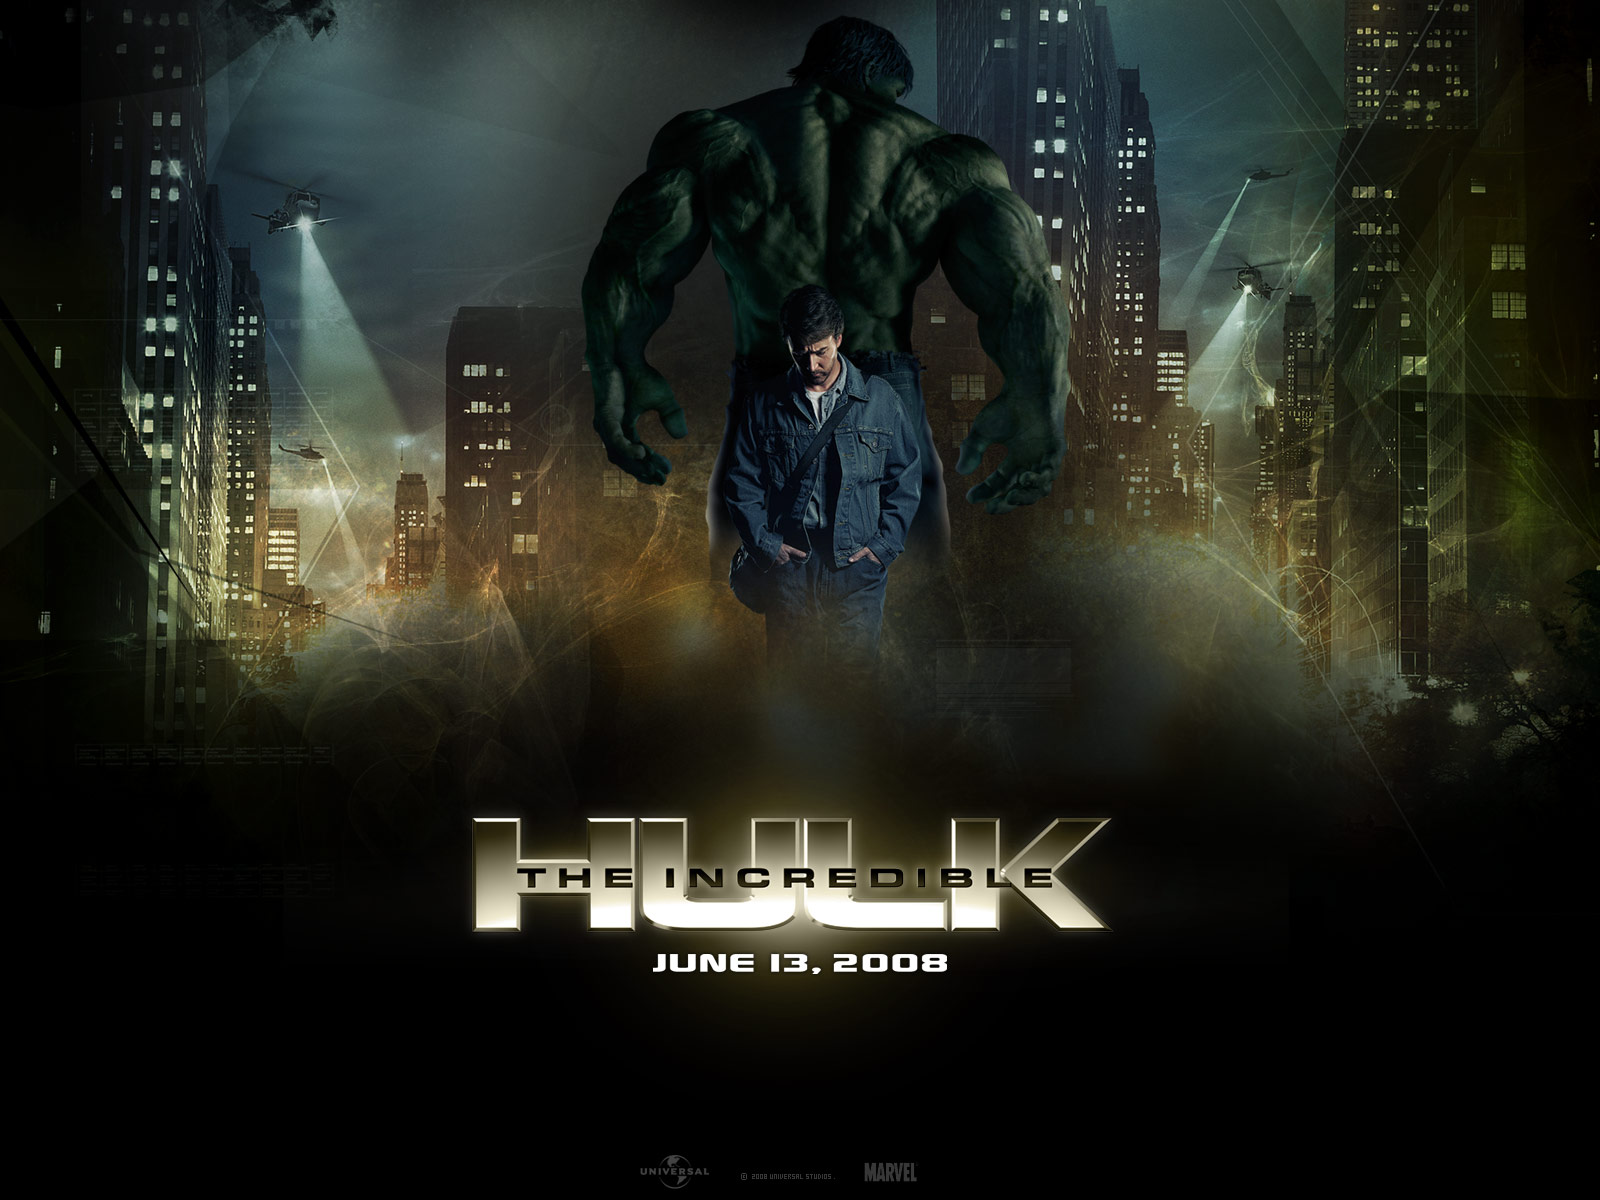 http://4.bp.blogspot.com/-q7FZLZEMHfo/TbULL5s3JKI/AAAAAAAAABs/FUdwxh-WoSc/s1600/the_incredible_hulk%252C_2008%252C_edward_norton.jpg